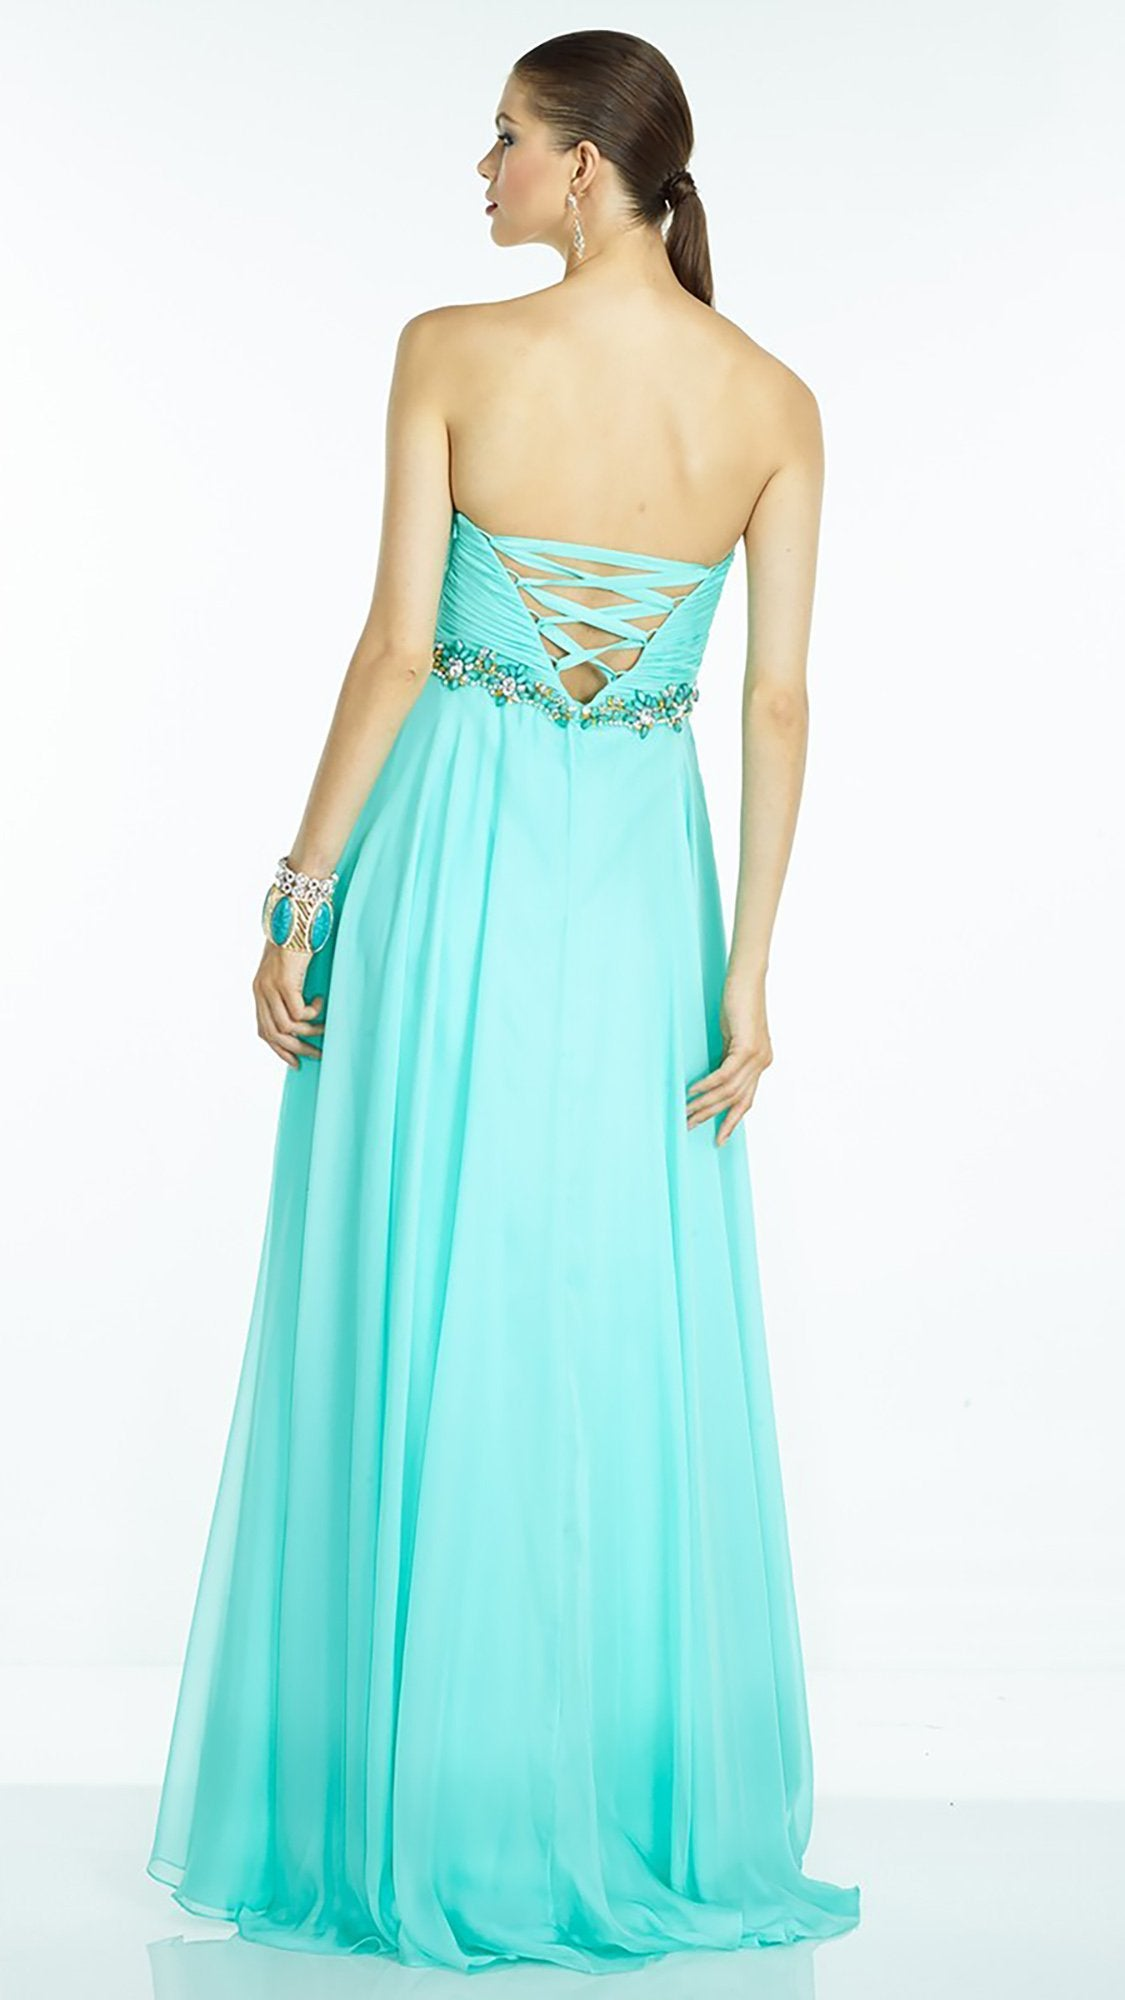 Alyce Paris Jeweled Strapless Ruched Sweetheart A-Line Dress 35811 In Green